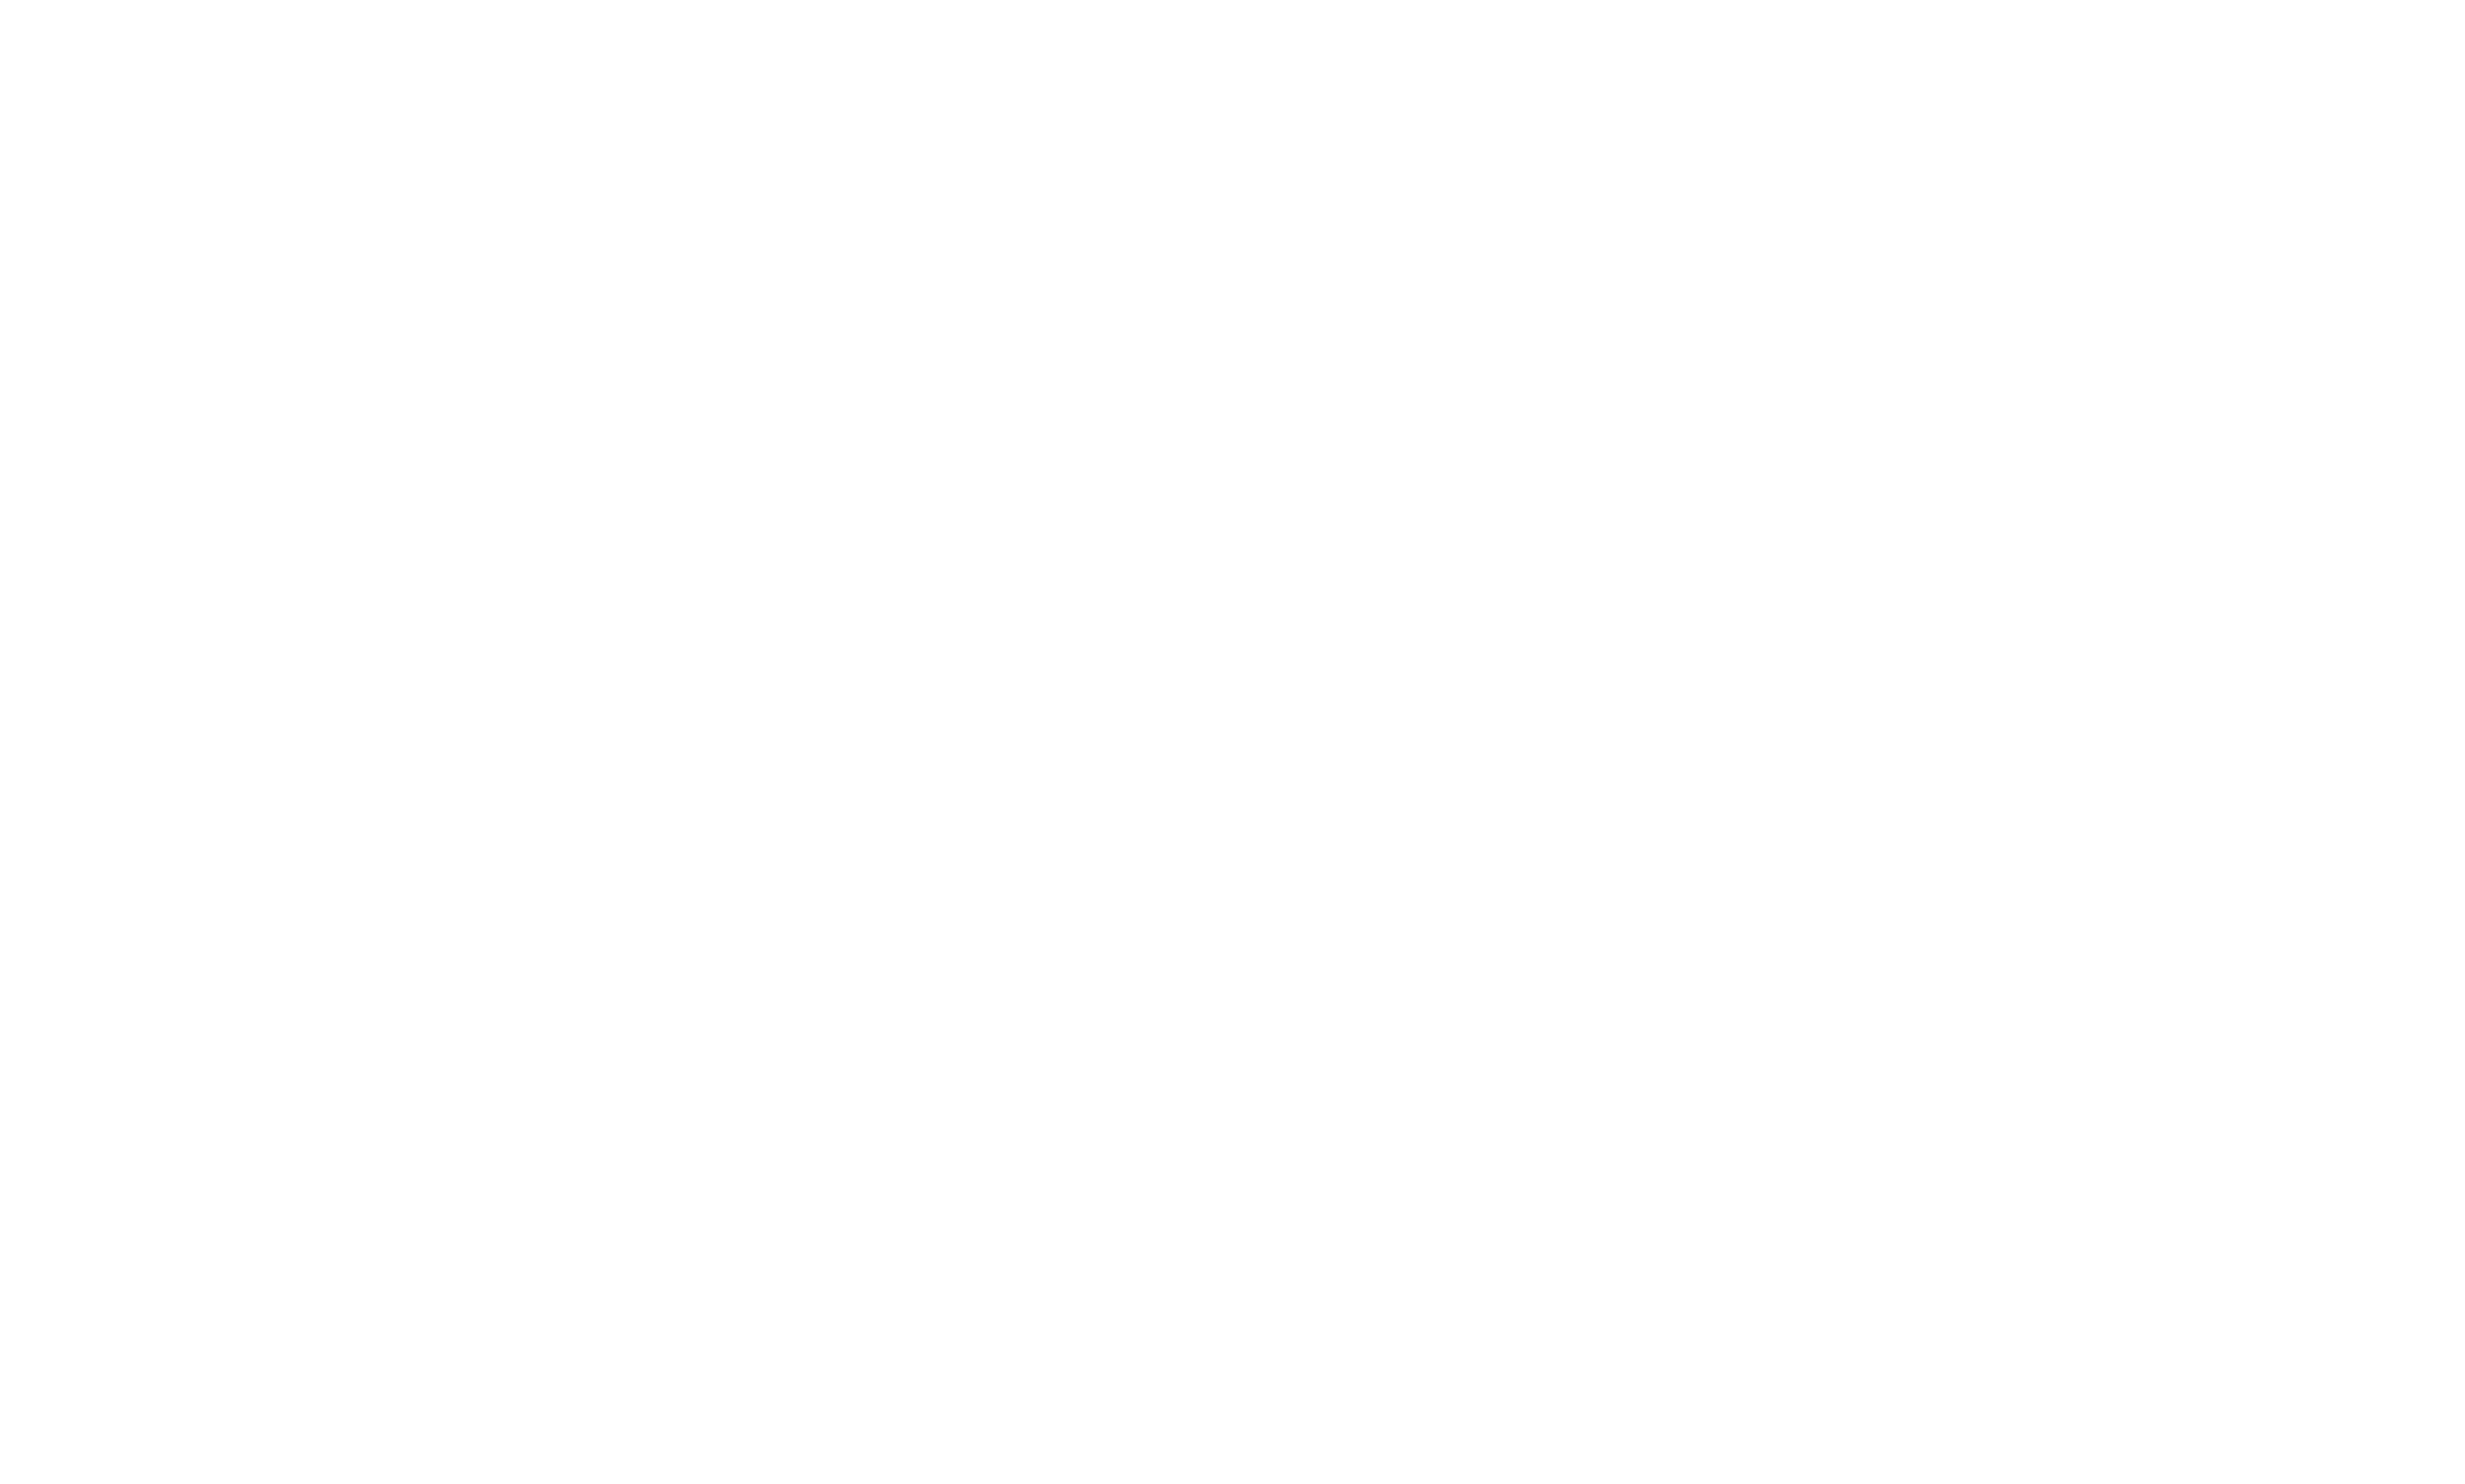 Humane Society of Cedar Creek Lake |